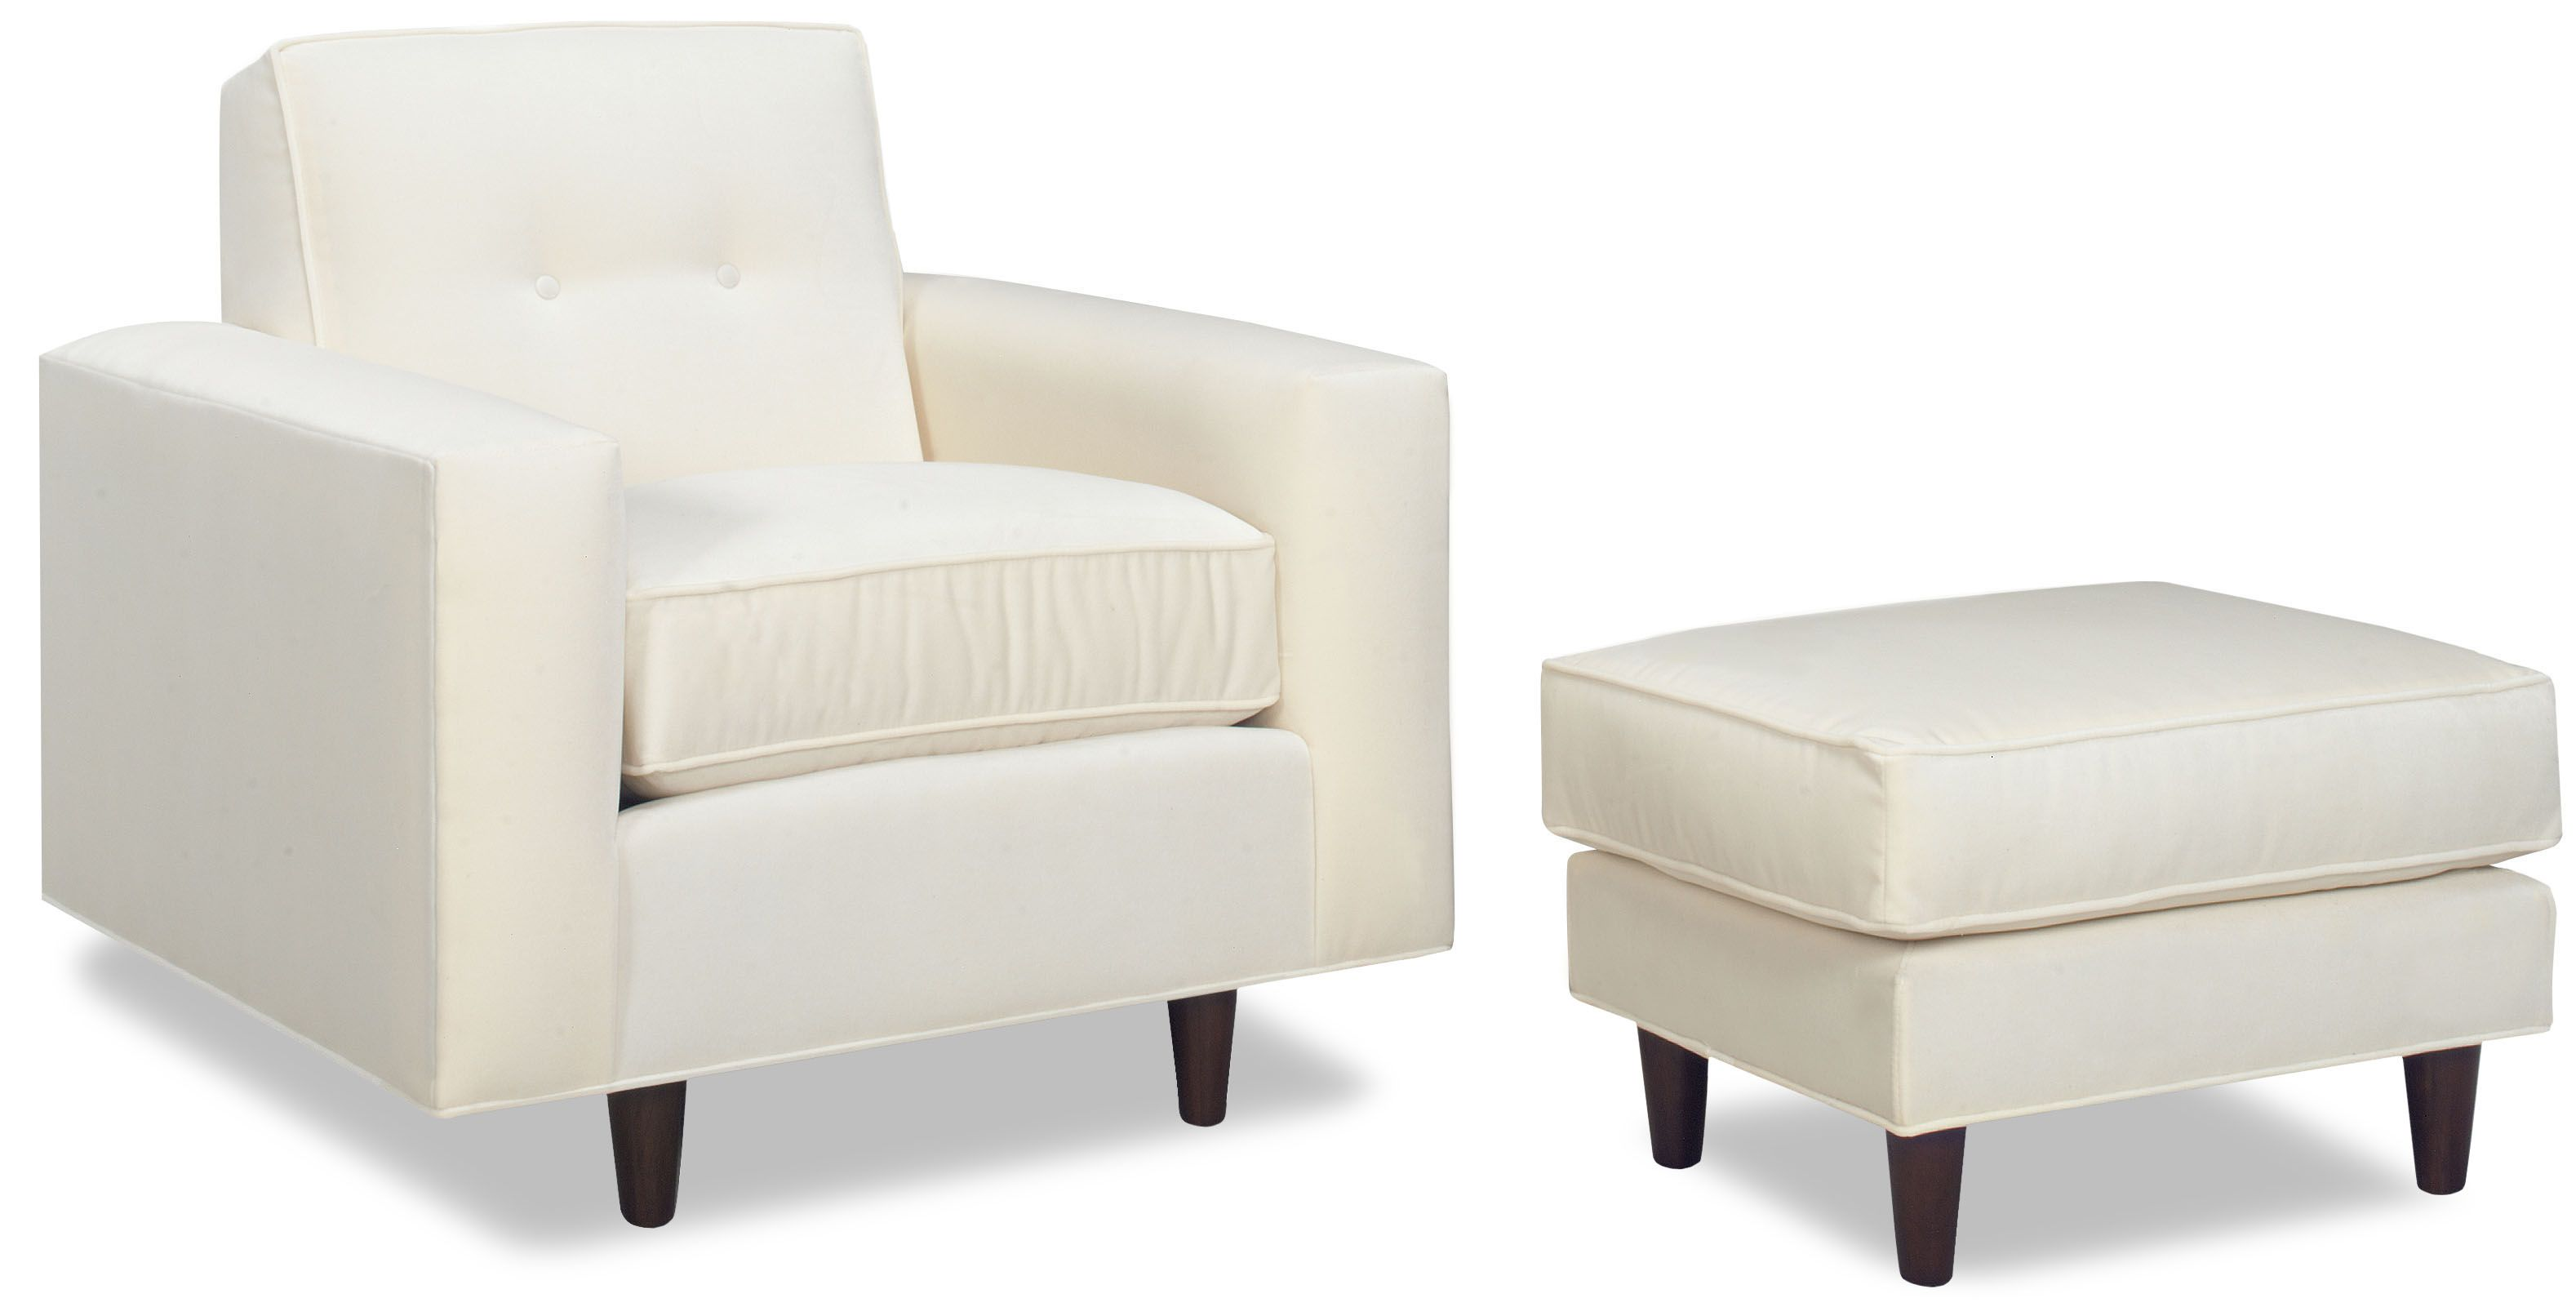 Our 1370 C 1370 Ott Southern Furniture Dining Room Chairs